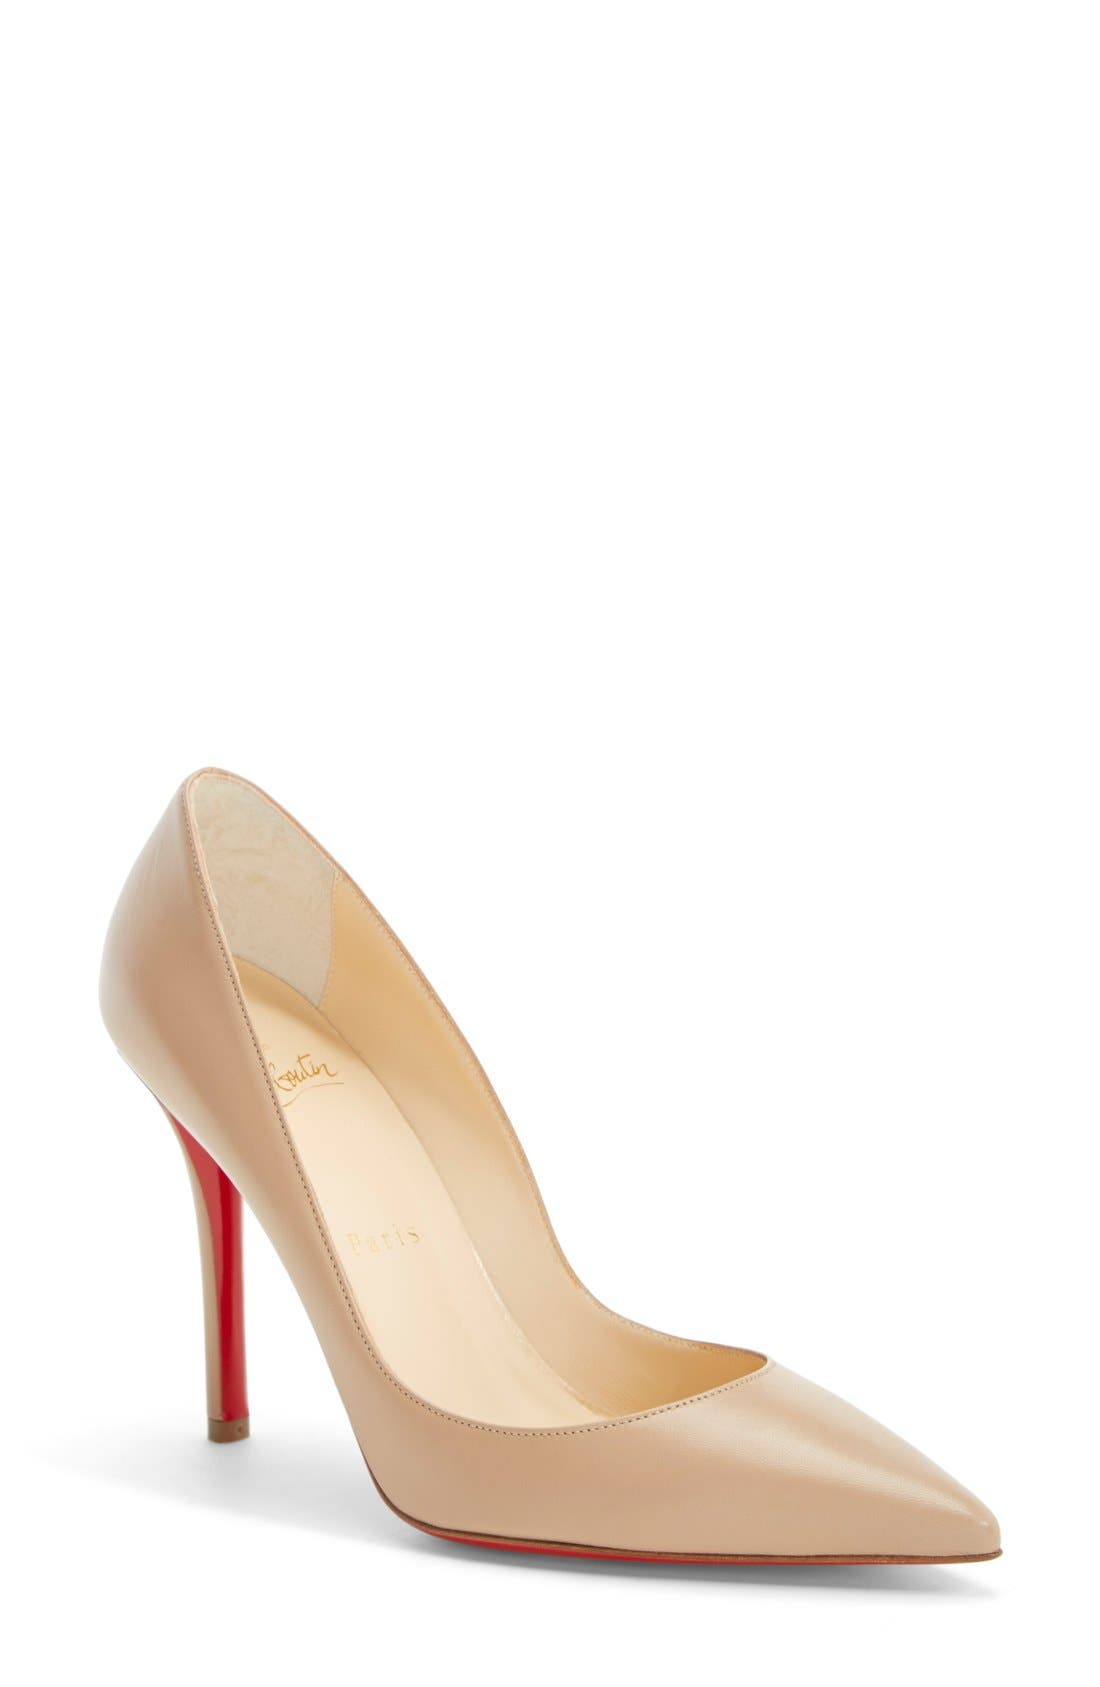 'Apostrophy' Pointy Toe Pump,                         Main,                         color,